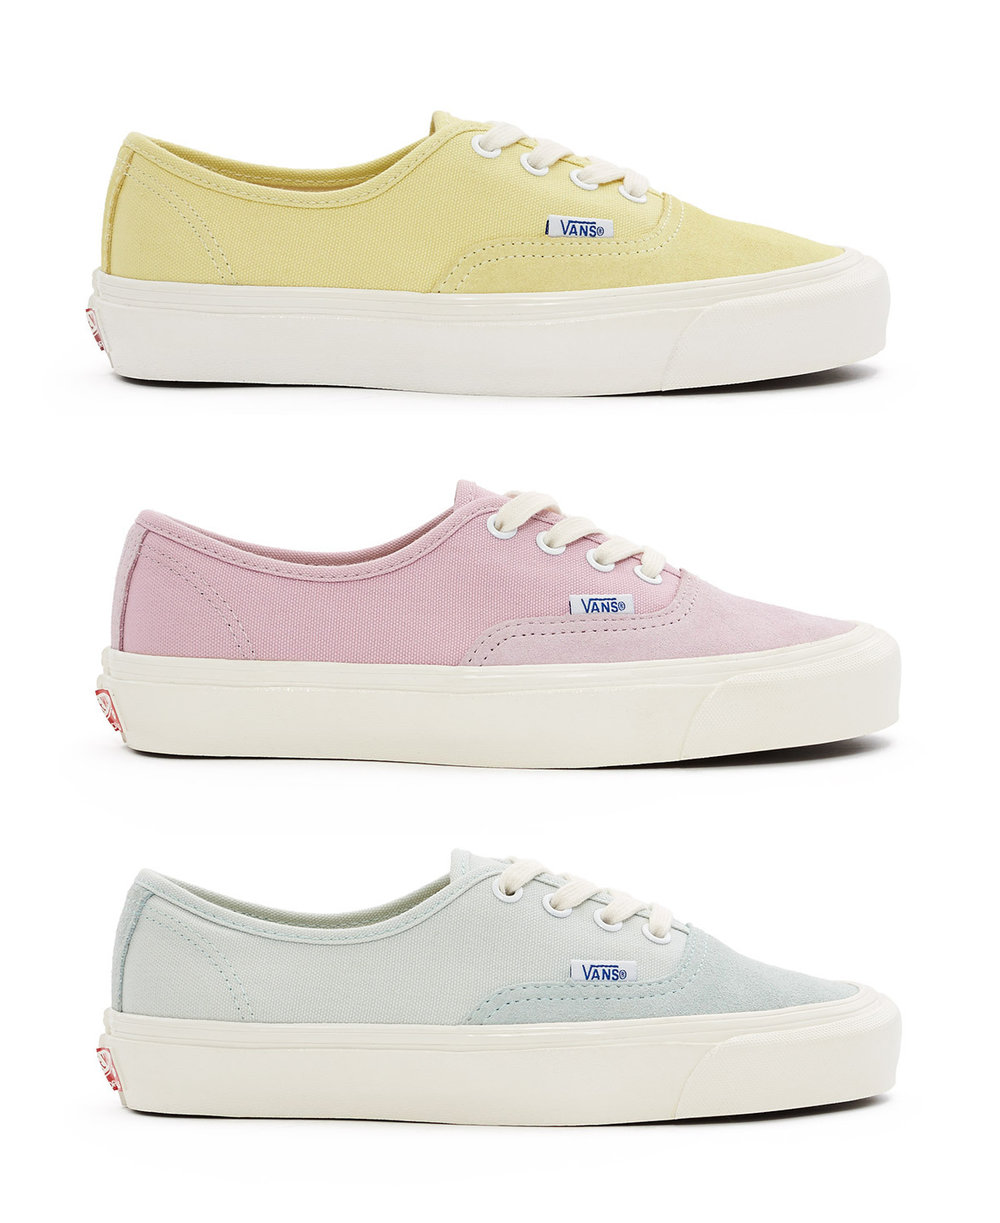 Vault by Vans OG Authentic LX Pastel Collection